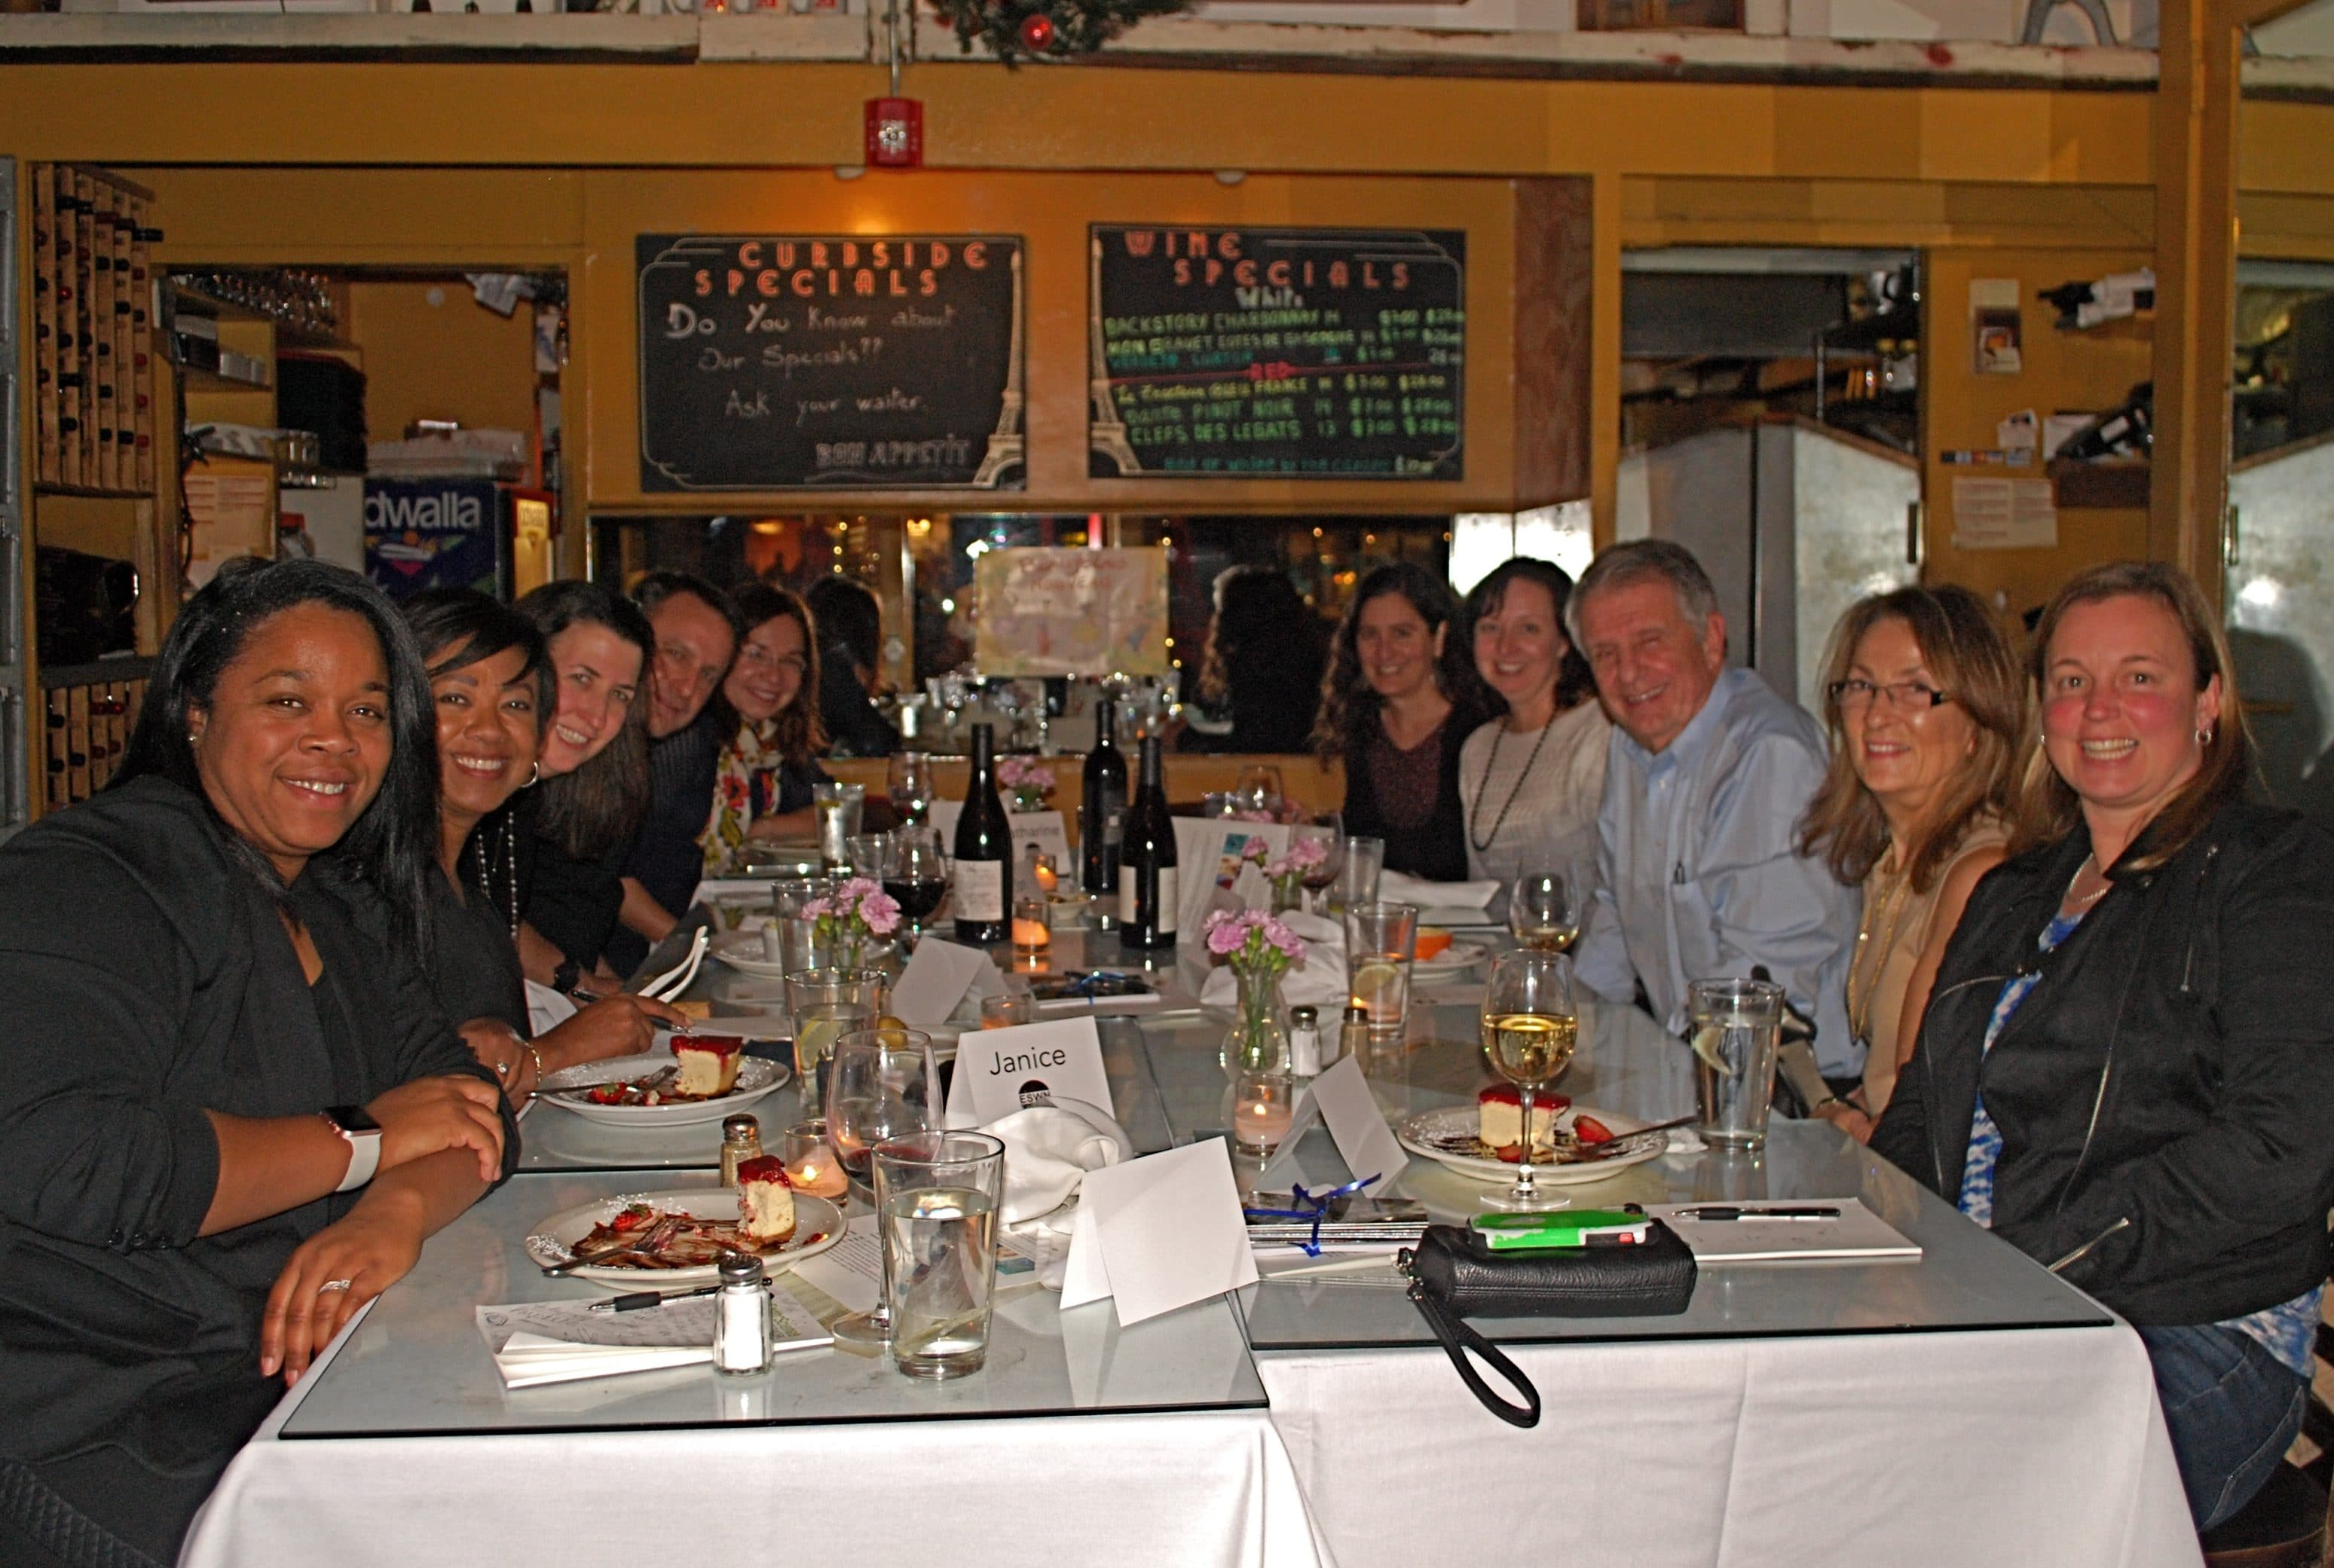 Melanie Harrison Okoro, Janice Huff, Tracey Holloway, Jon Foley, Katharine Hayhoe, Erika Marín-Spiotta, Meredith Hastings, Mike Hastings, Pam Hastings, and Chris Olex at ESWN's thought-leaders dinner